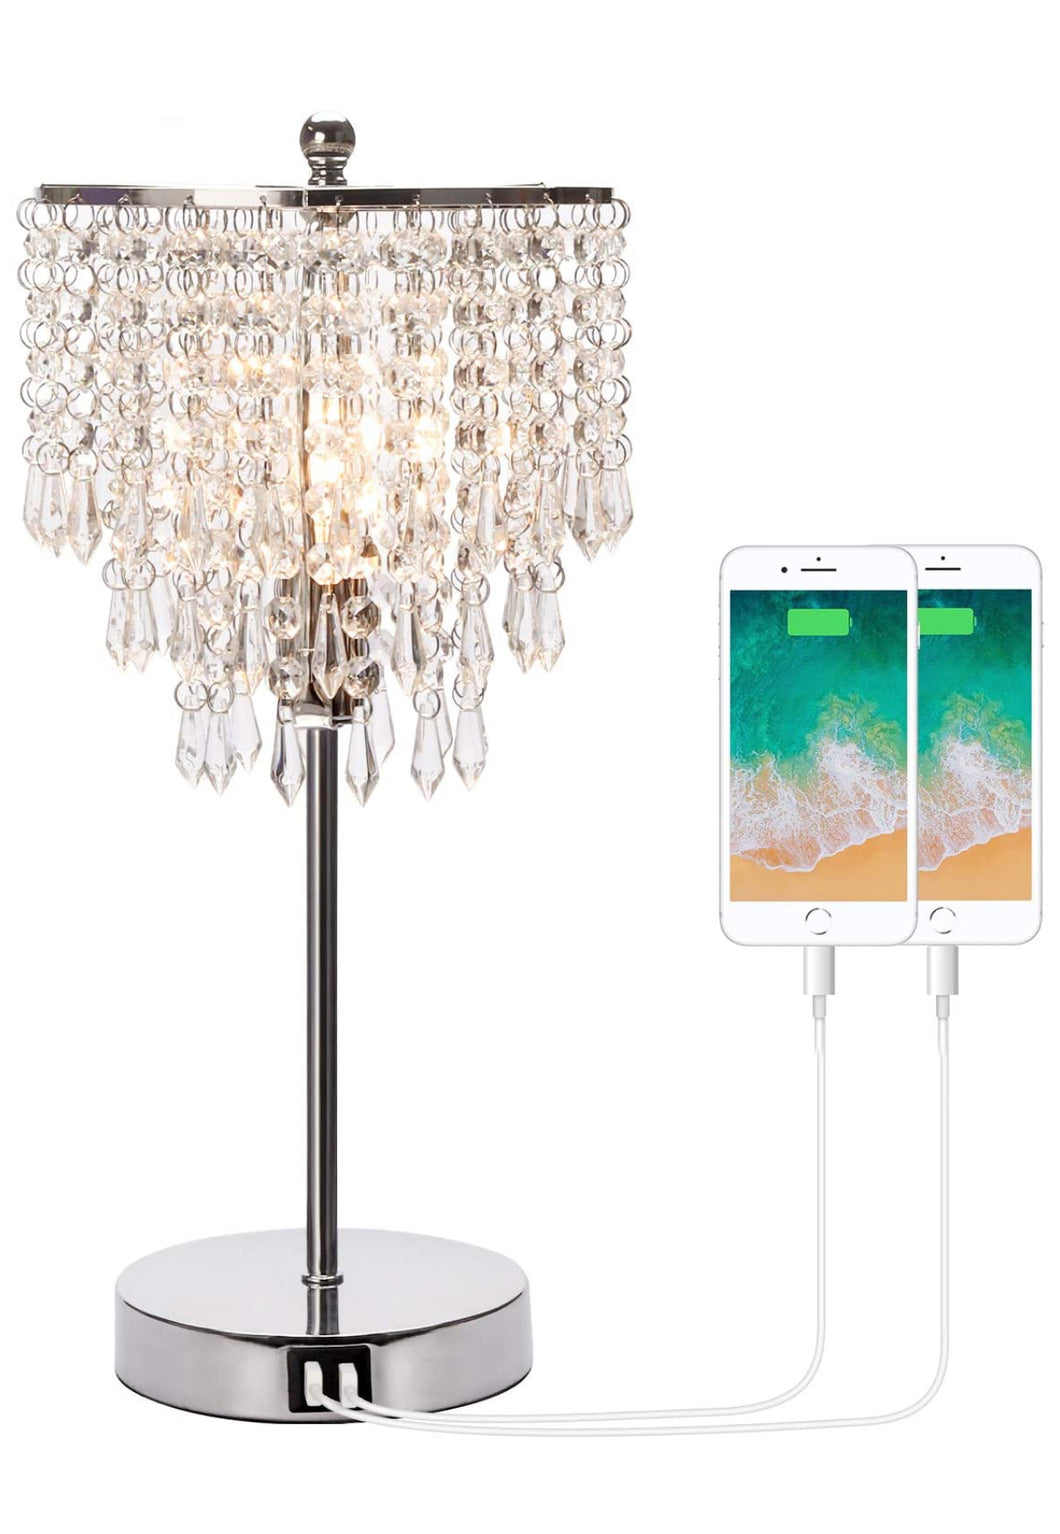 Crystal Bedside Lamp With USB Charging Ports